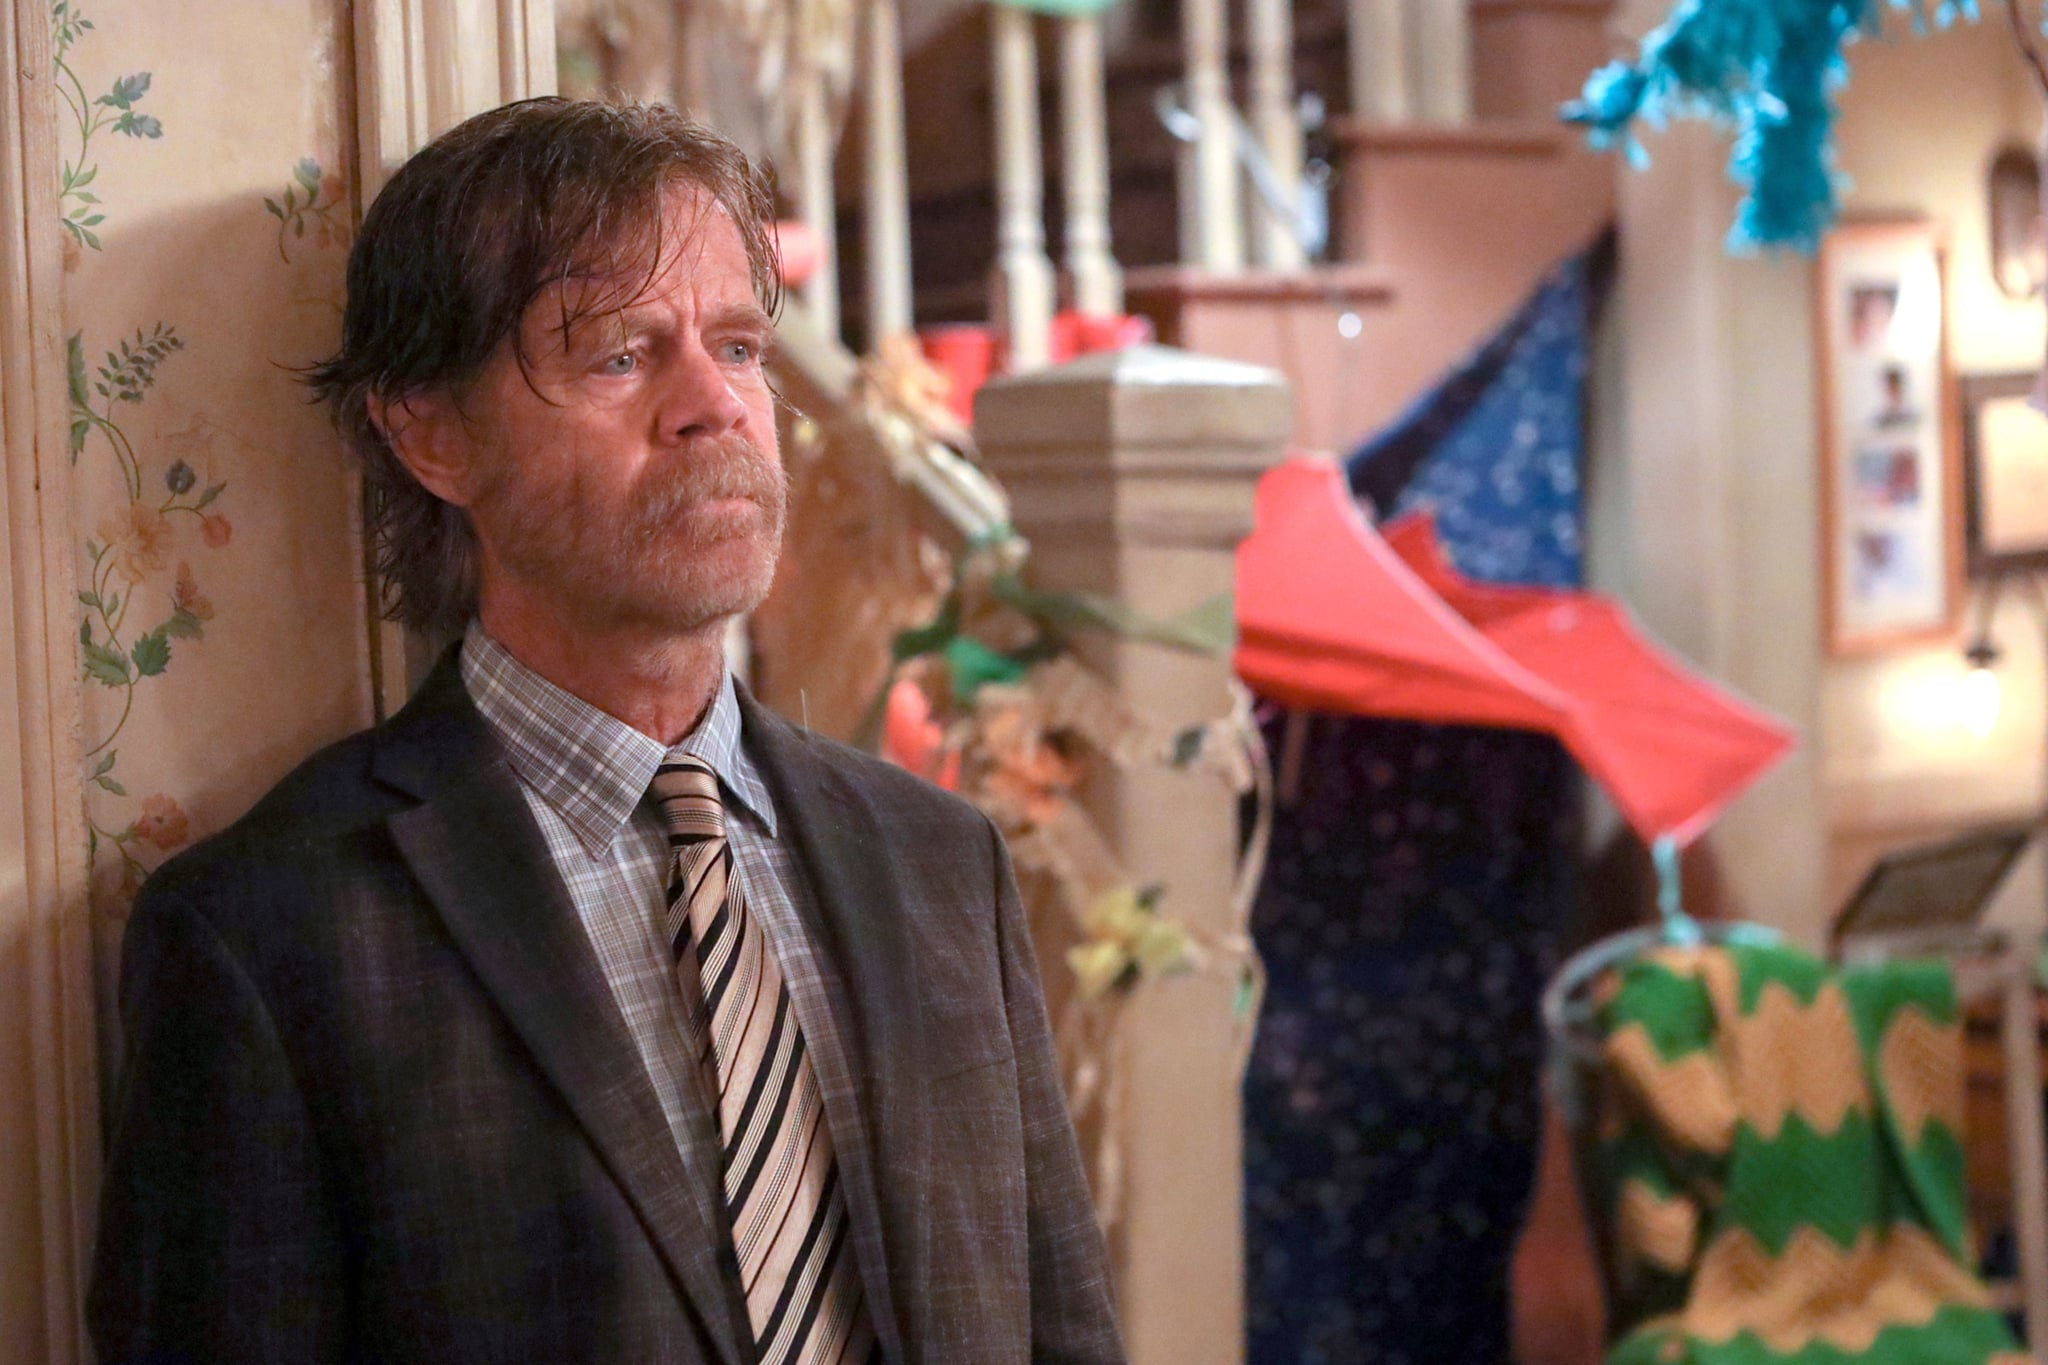 SHAMELESS, William H. Macy, 'A Little Gallagher Goes A Long Way', (Season 10, ep. 1004, aired Dec. 1, 2019). photo: Paul Sarkis / Showtime / courtesy Everett Collection